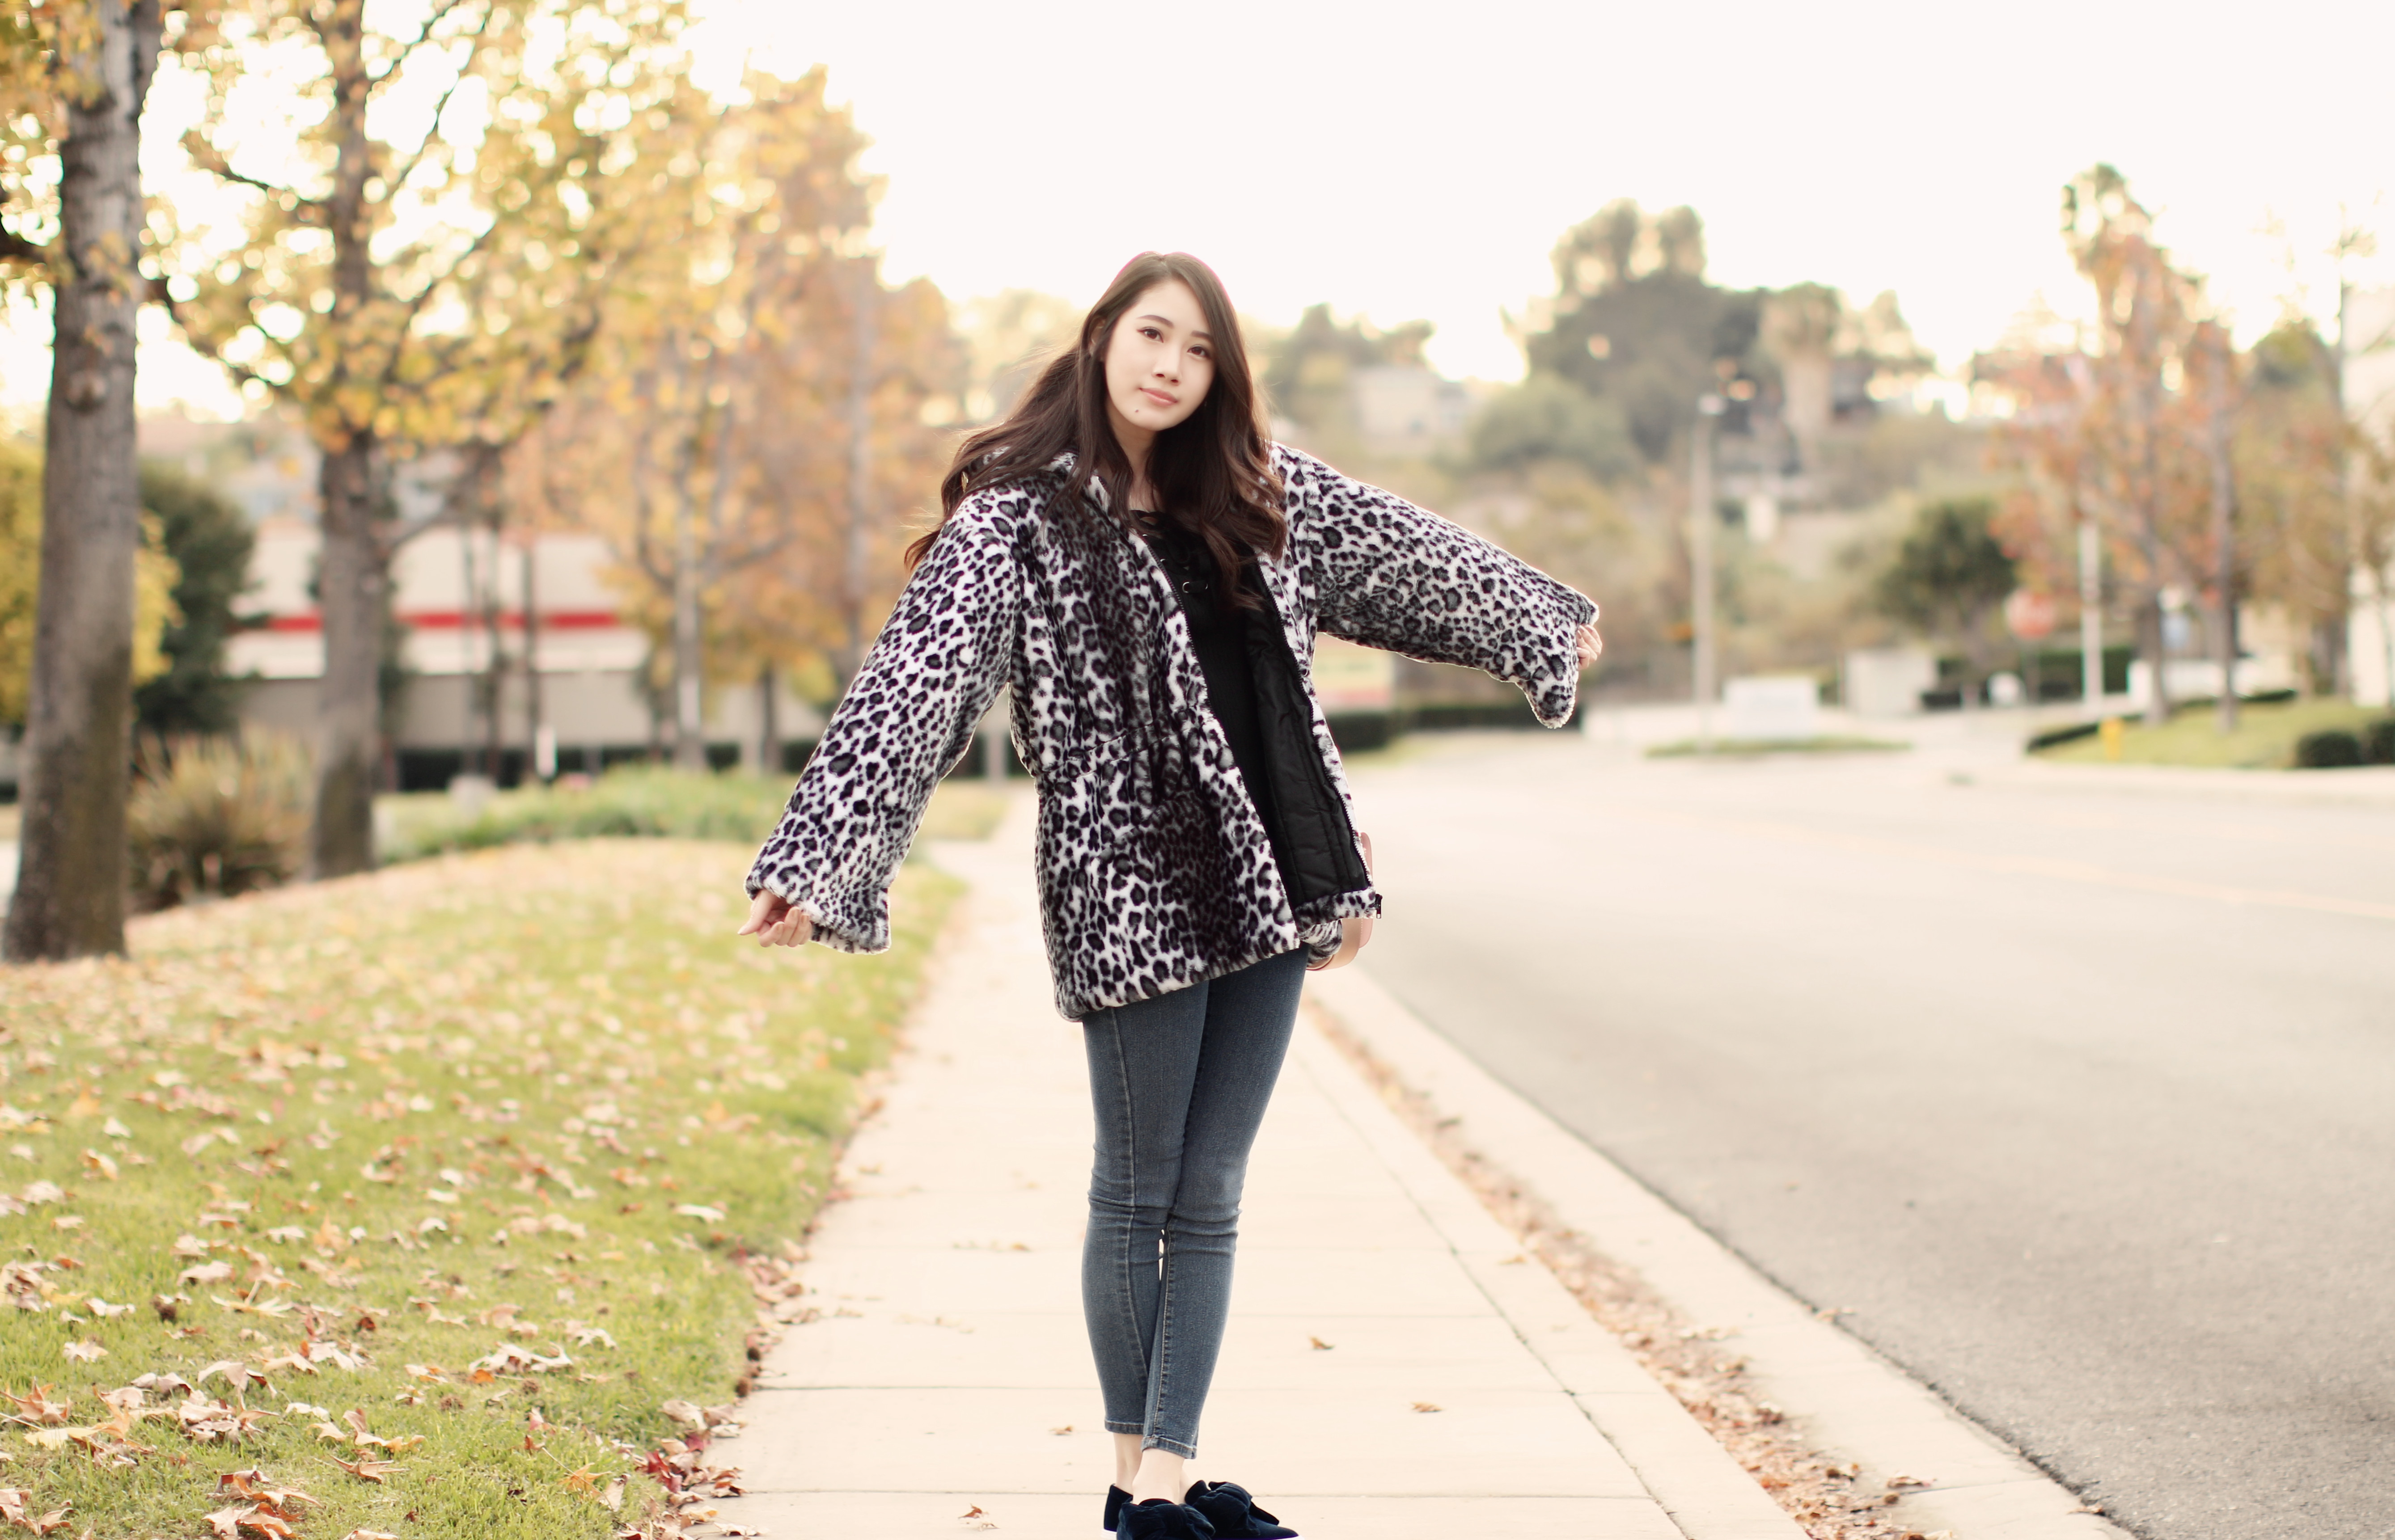 4054-ootd-fashion-style-outfitoftheday-wiwt-streetstyle-furcoat-fauxfur-forever21-f21xme-hollister-hcostylescene-elizabeeetht-clothestoyouuu